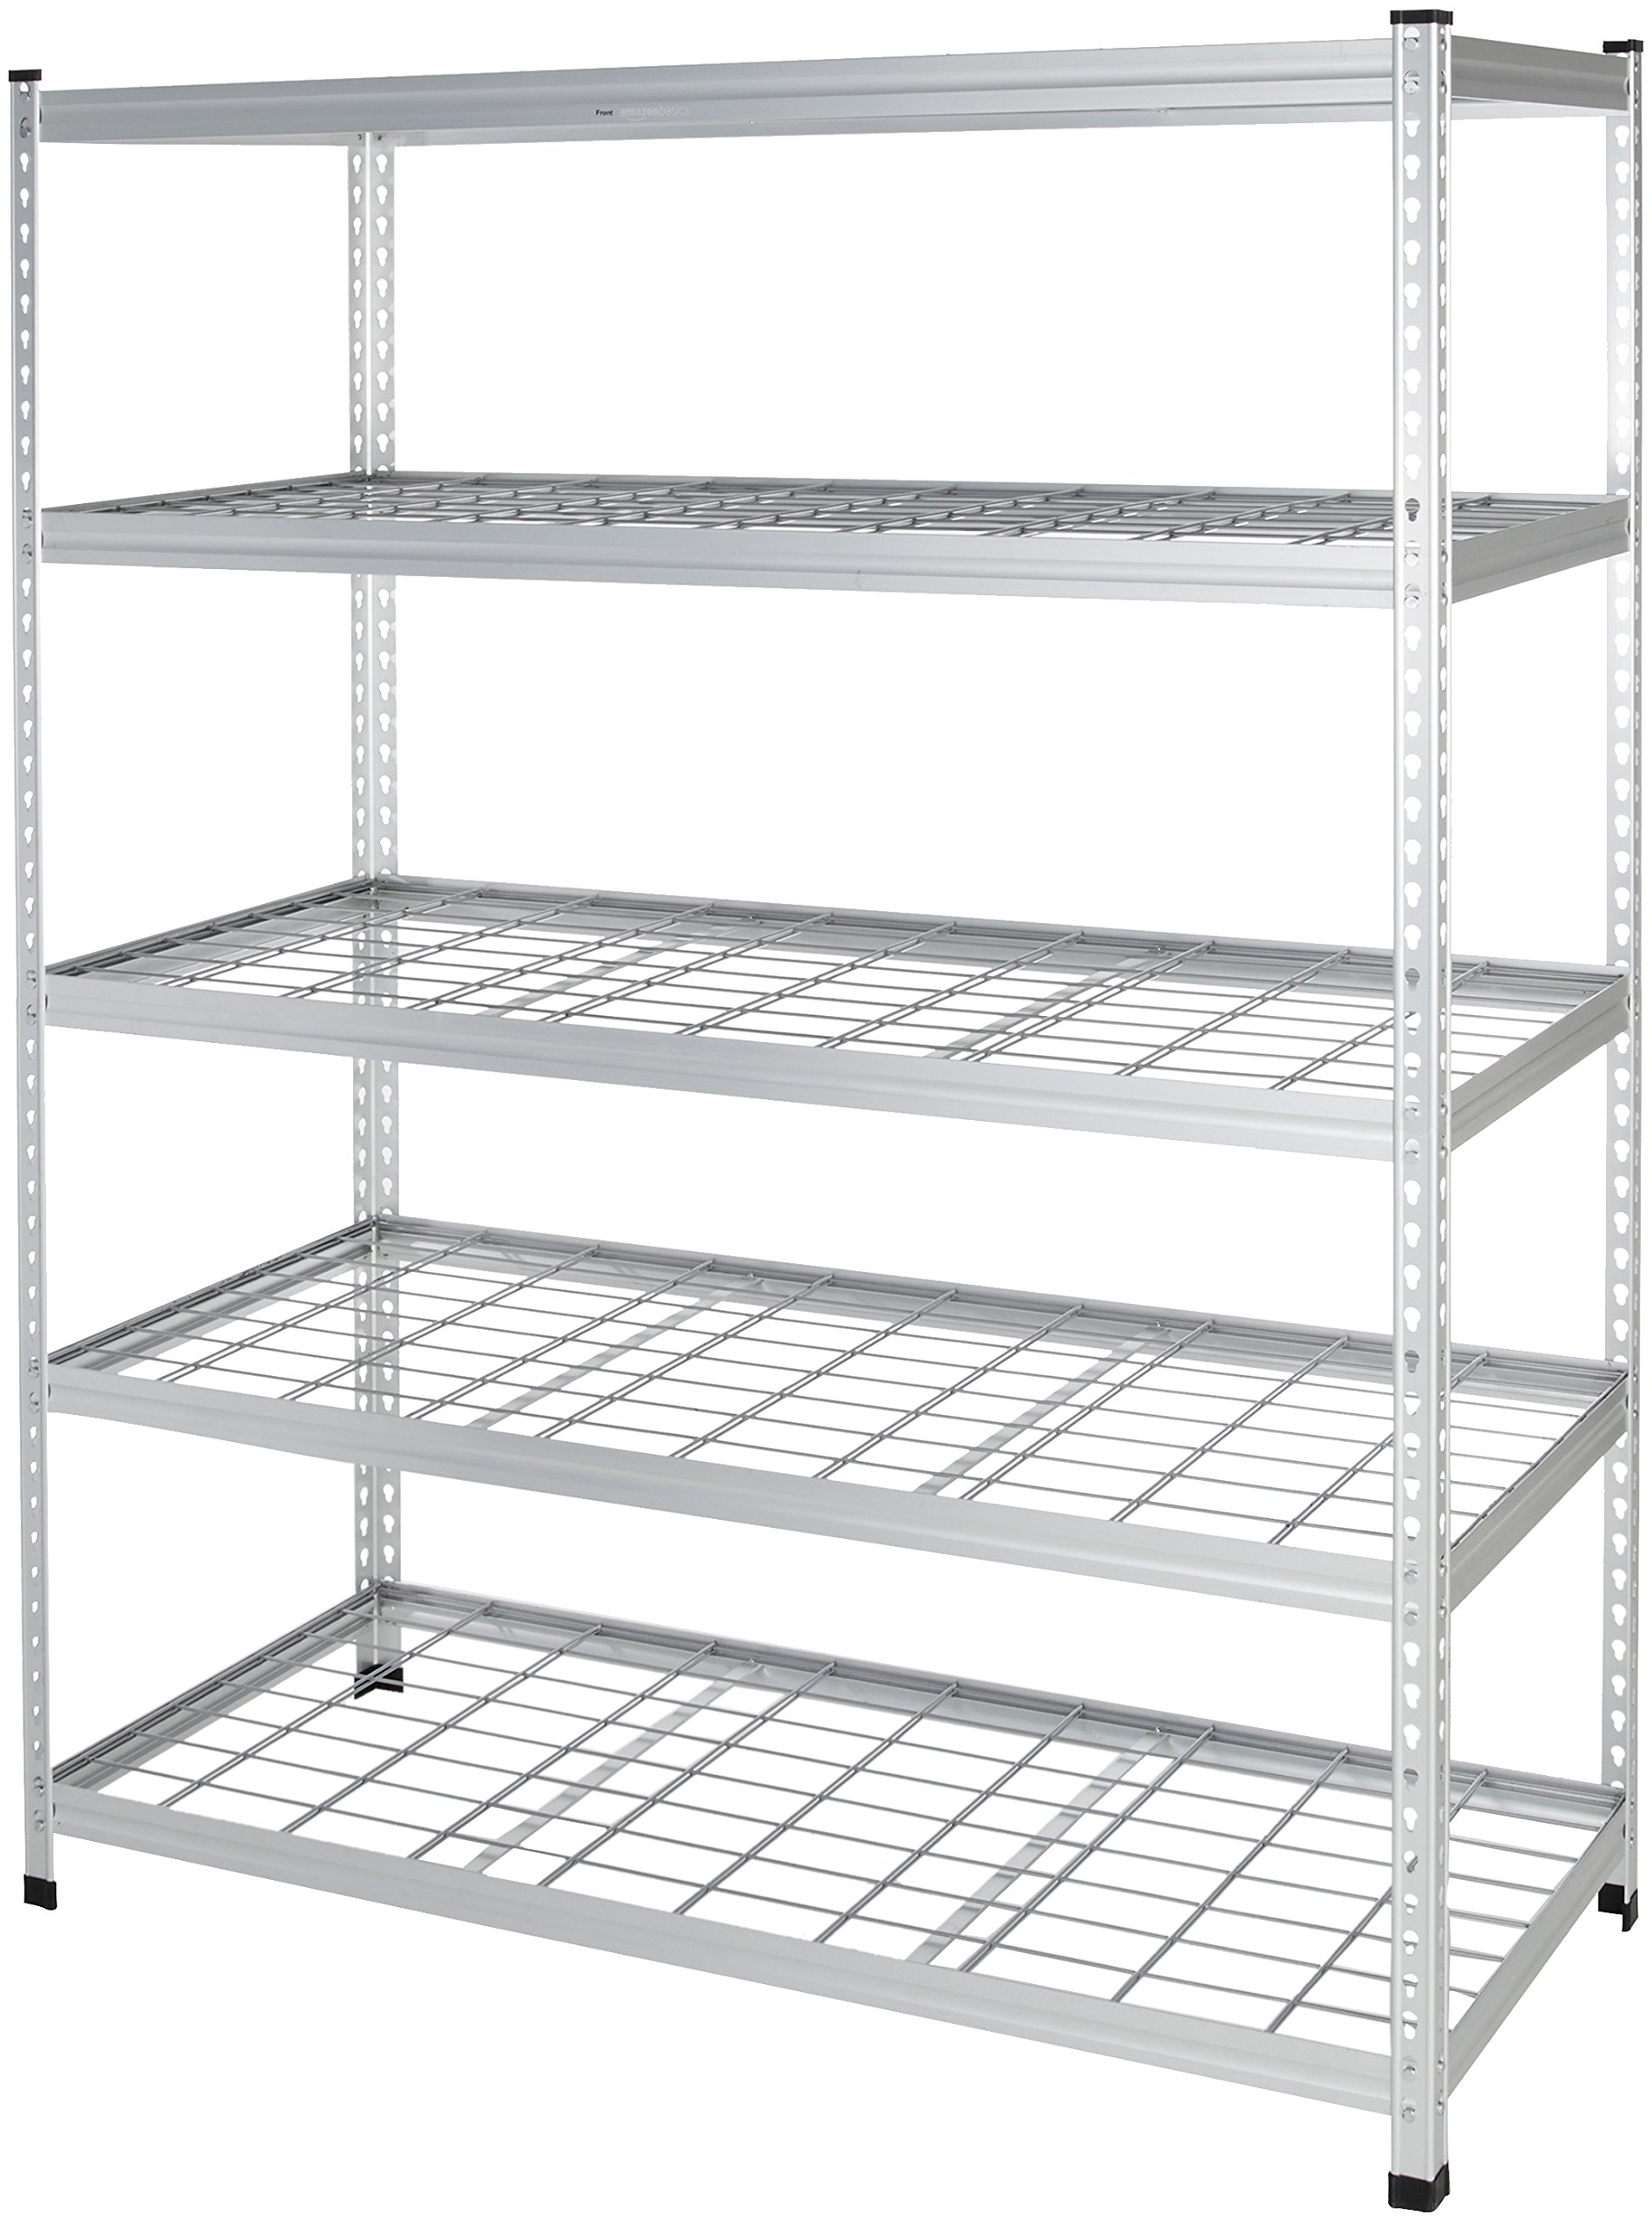 AmazonBasics Heavy Duty Shelving Single-Post Steel Wire Shelf - 60 x 24 x 78